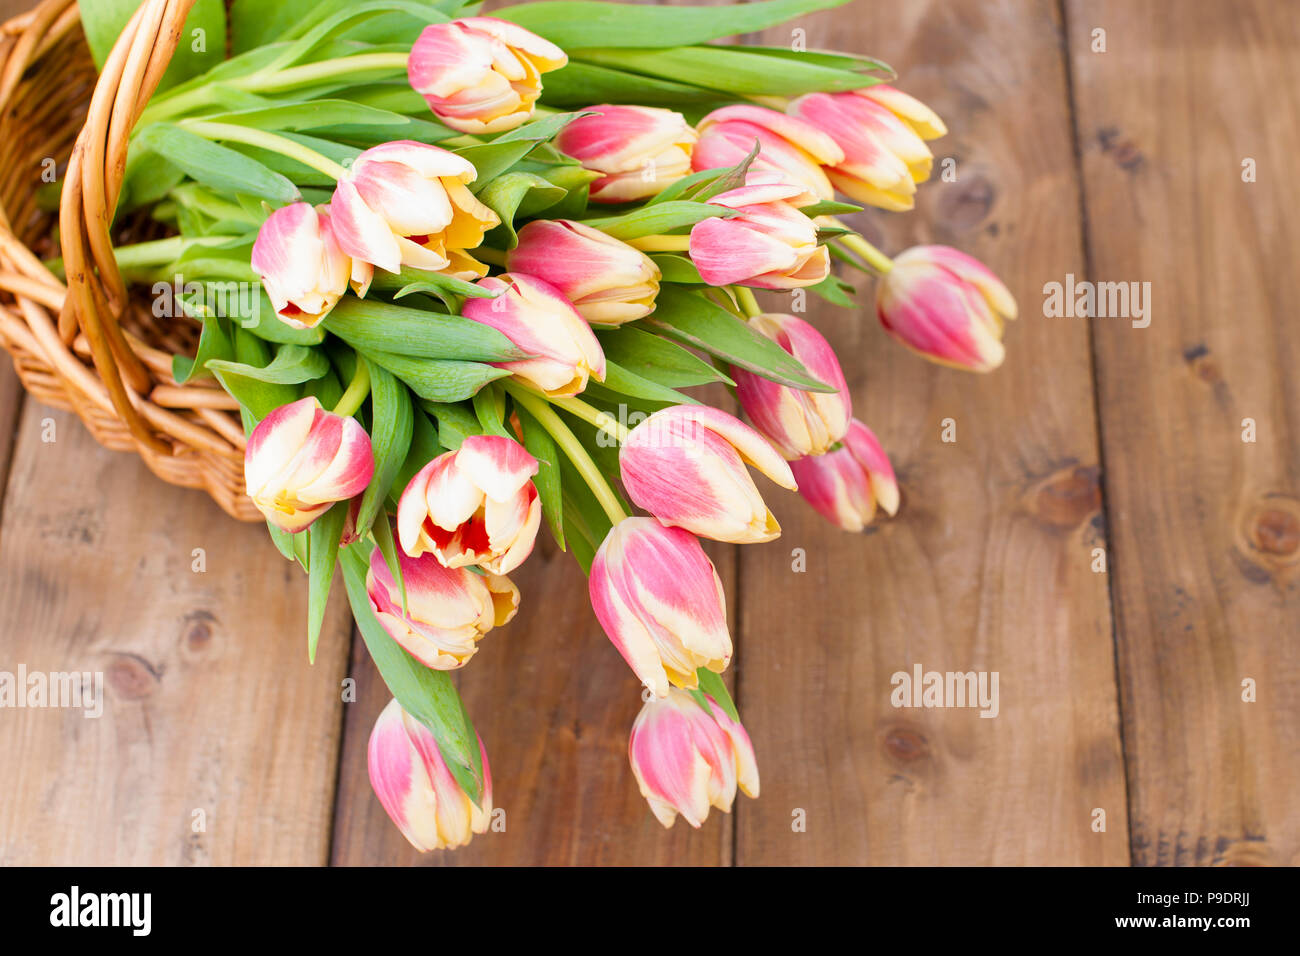 Bright Spring Flowers In A Wooden Box Stock Photos Bright Spring